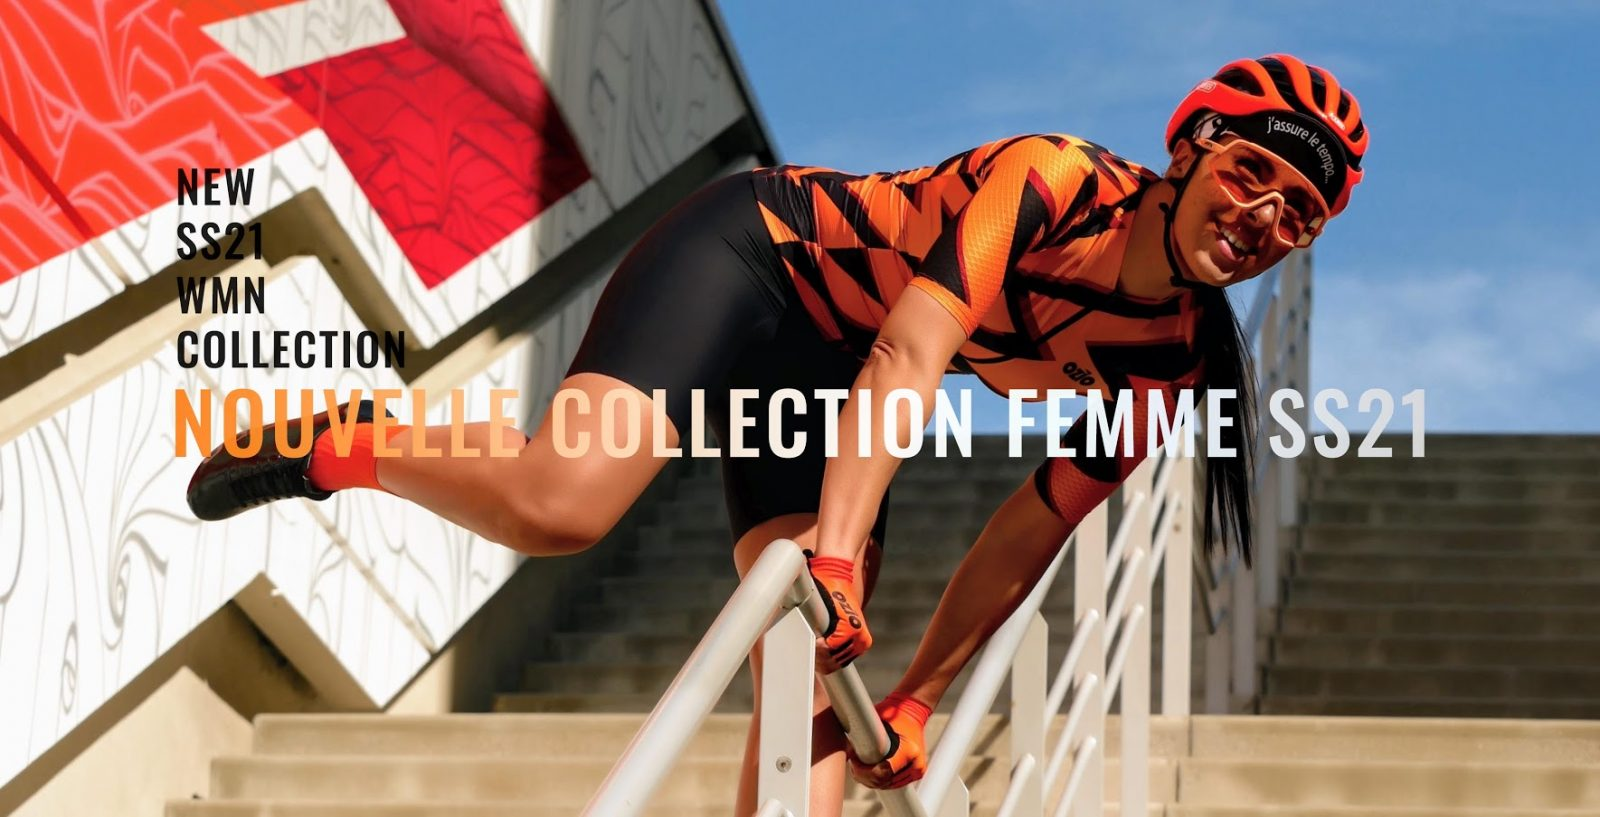 women's cycling clothing spring summer collection